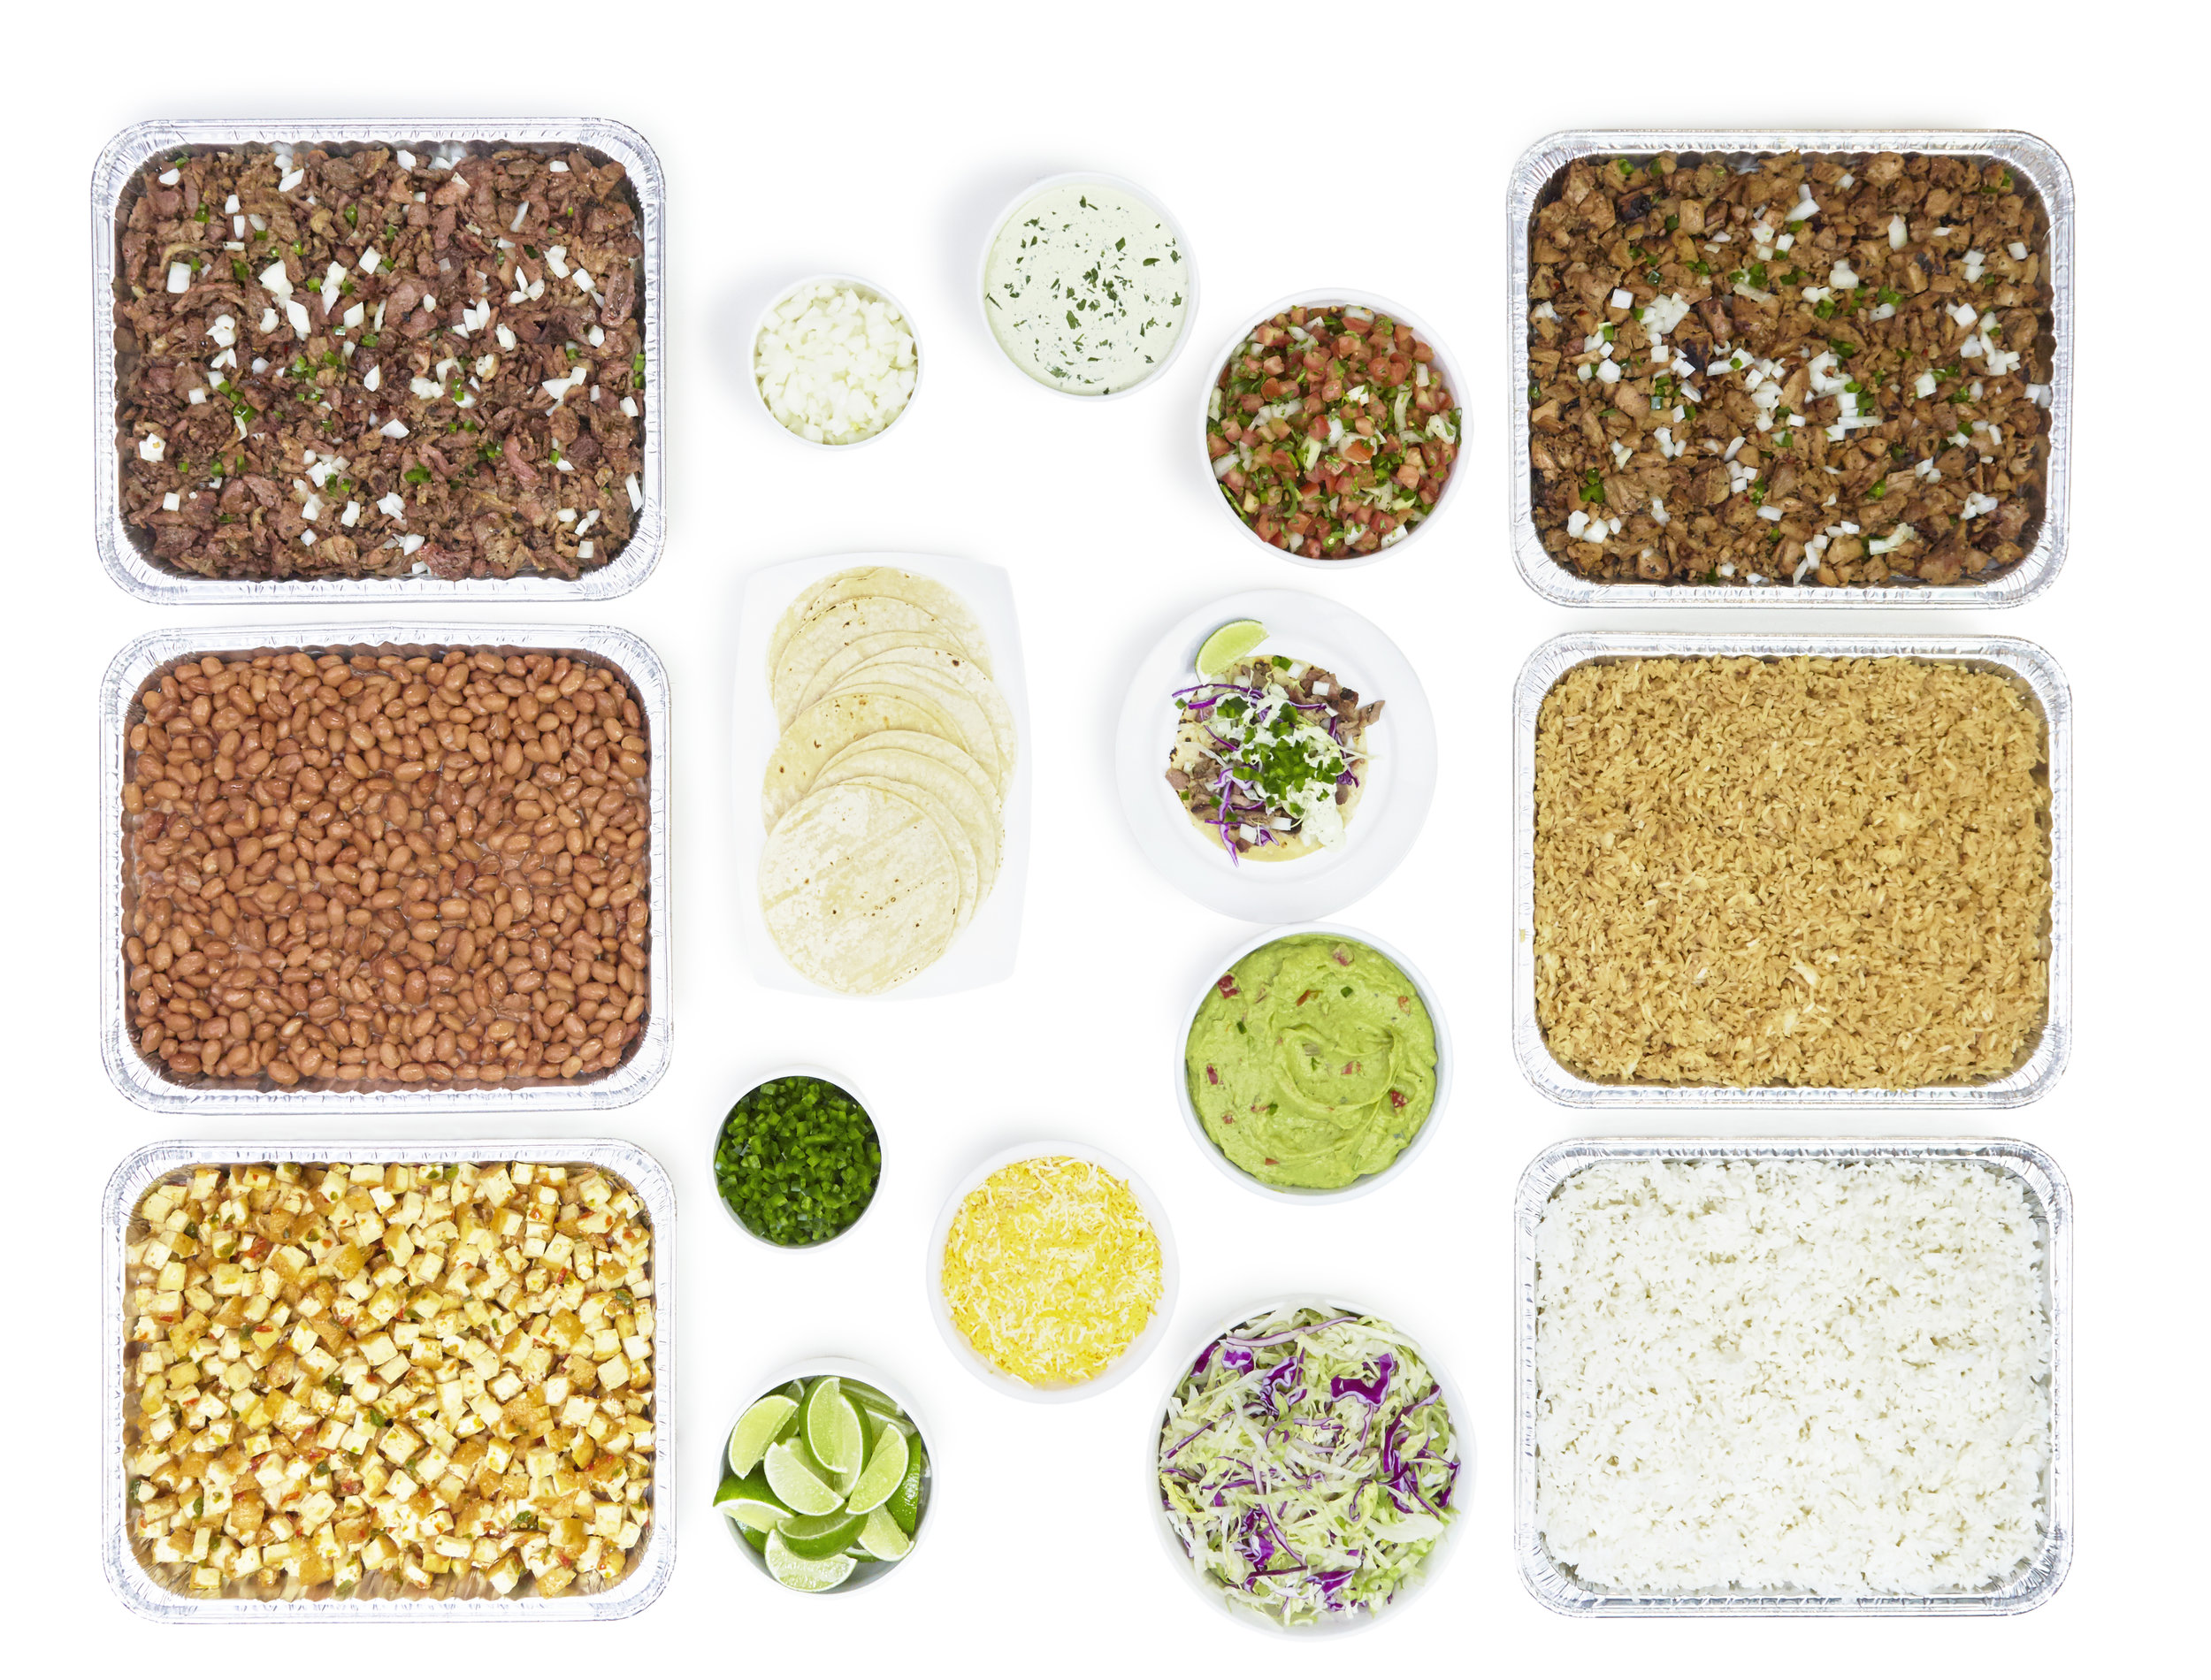 FOR PARTIES OF 20 OR MORE - Choice of up to 3 proteins: Pork sisig, chicken sisig, pork tocino (GF) or tofu sisig (GF).Also served with:• Steamed rice• Adobo garlic rice• Pinto Beans• Warm corn tortillas• Lettuce• Pico de gallo• Cilantro cream sauce• Fresh diced onions & jalapeños• Limes• Guacamole (optional)• Shredded or nacho cheese (optional)